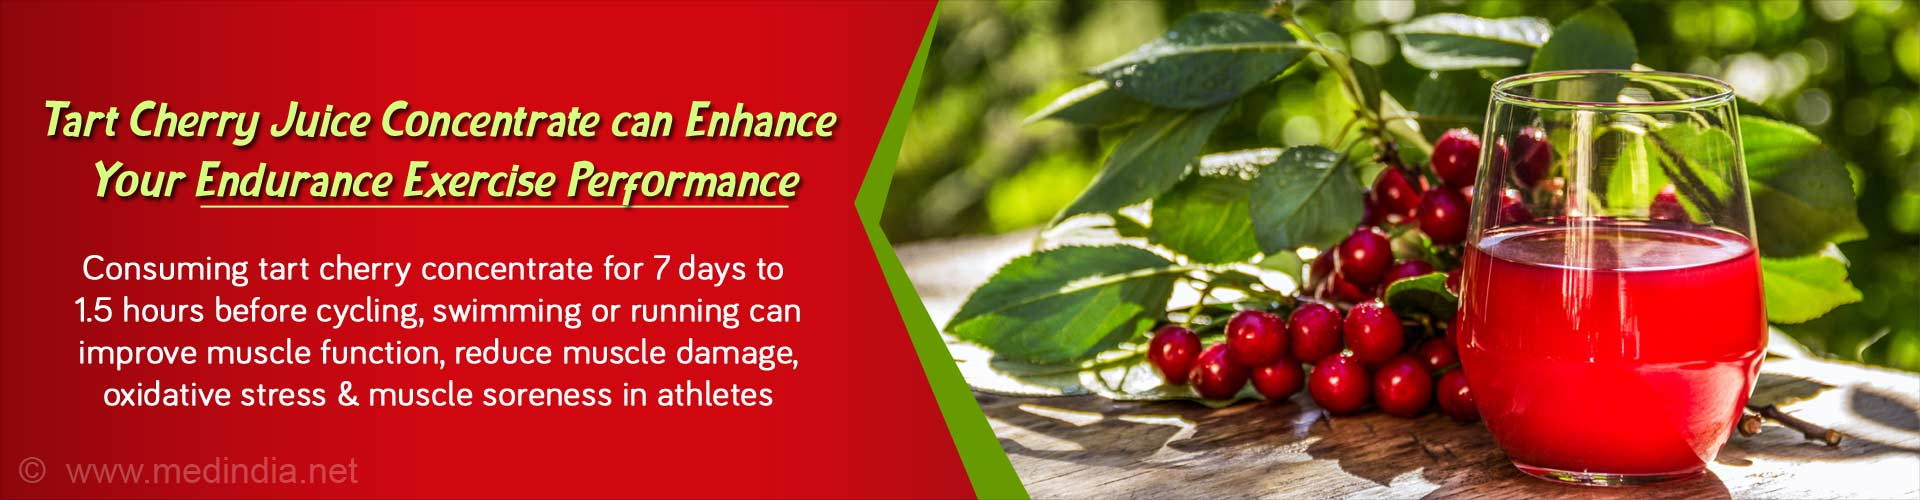 Tart Cherry Juice Concentrate can Boost Your Endurance Exercise Performance